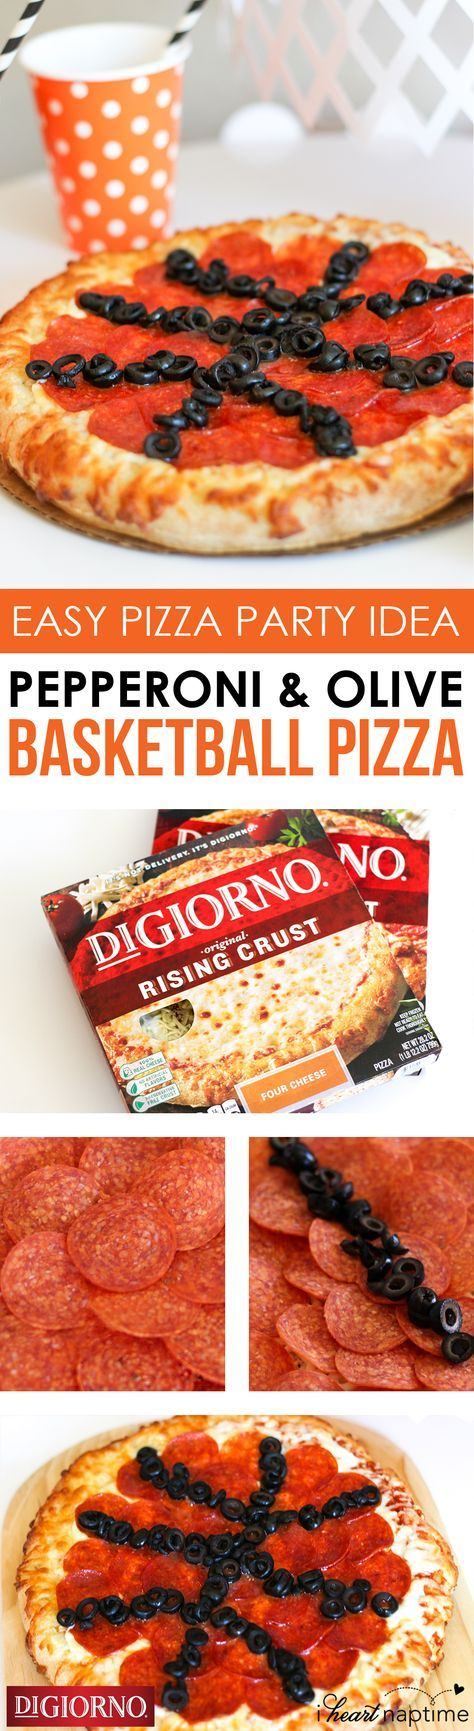 Inspiration for your basketball watch party from /iheartnaptime/! Supplies: DIGIORNO Original Rising Crust Four Cheese pizza, Olives and Pepperoni slices. Step 1: Start with DIGIORNO Original Rising Crust Four Cheese pizza as the base of the basketball pizza. Step 2: Top the pizza in its entirety with pepperoni. Step 3: Add olives to the pizza to resemble the black stripes on a basketball. Step 4: Bake the pizza for about 20 minutes, serve and enjoy!